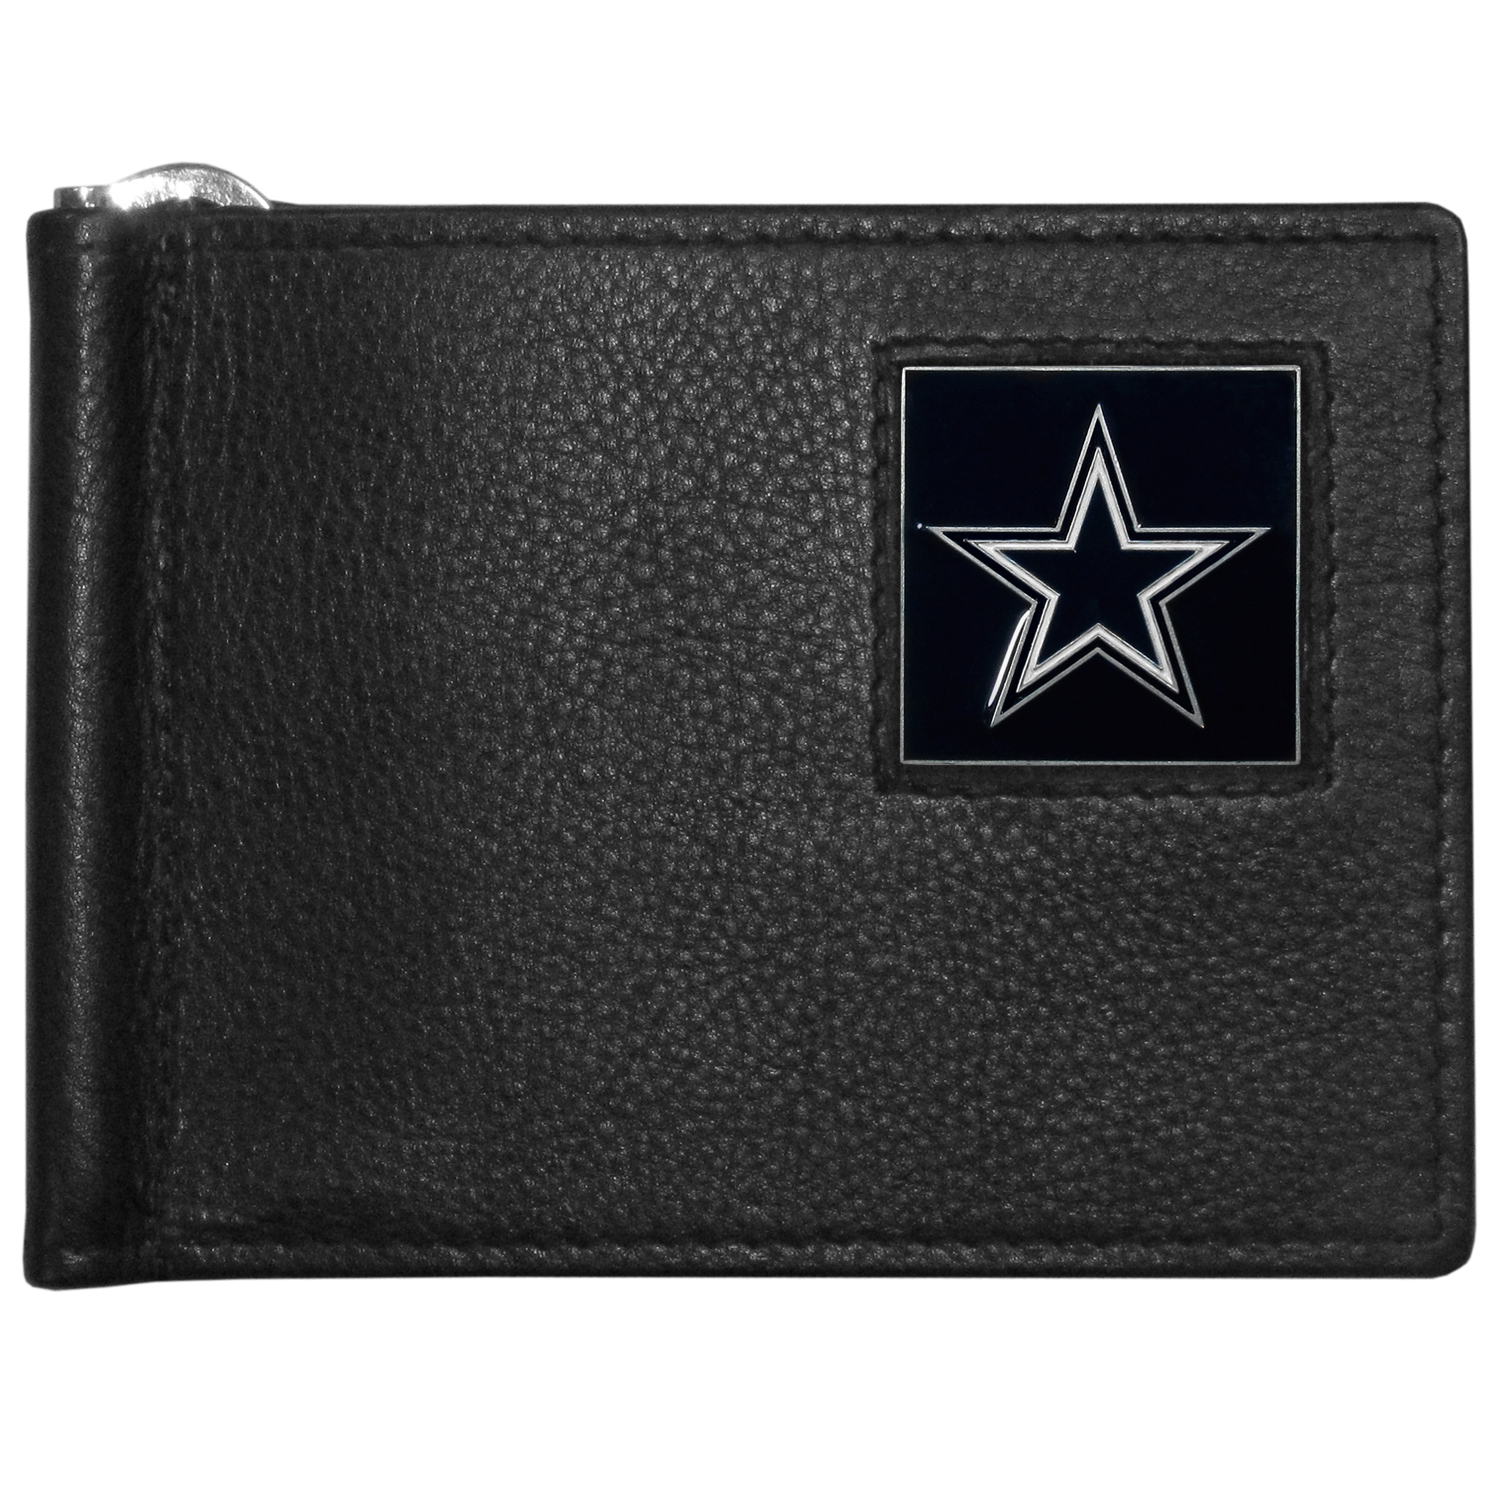 Dallas Cowboys Leather Bill Clip Wallet - This cool new style wallet features an inner, metal bill clip that lips up for easy access. The super slim wallet holds tons of stuff with ample pockets, credit card slots & windowed ID slot.  The wallet is made of genuine fine grain leather and it finished with a metal Dallas Cowboys emblem. The wallet is shipped in gift box packaging.